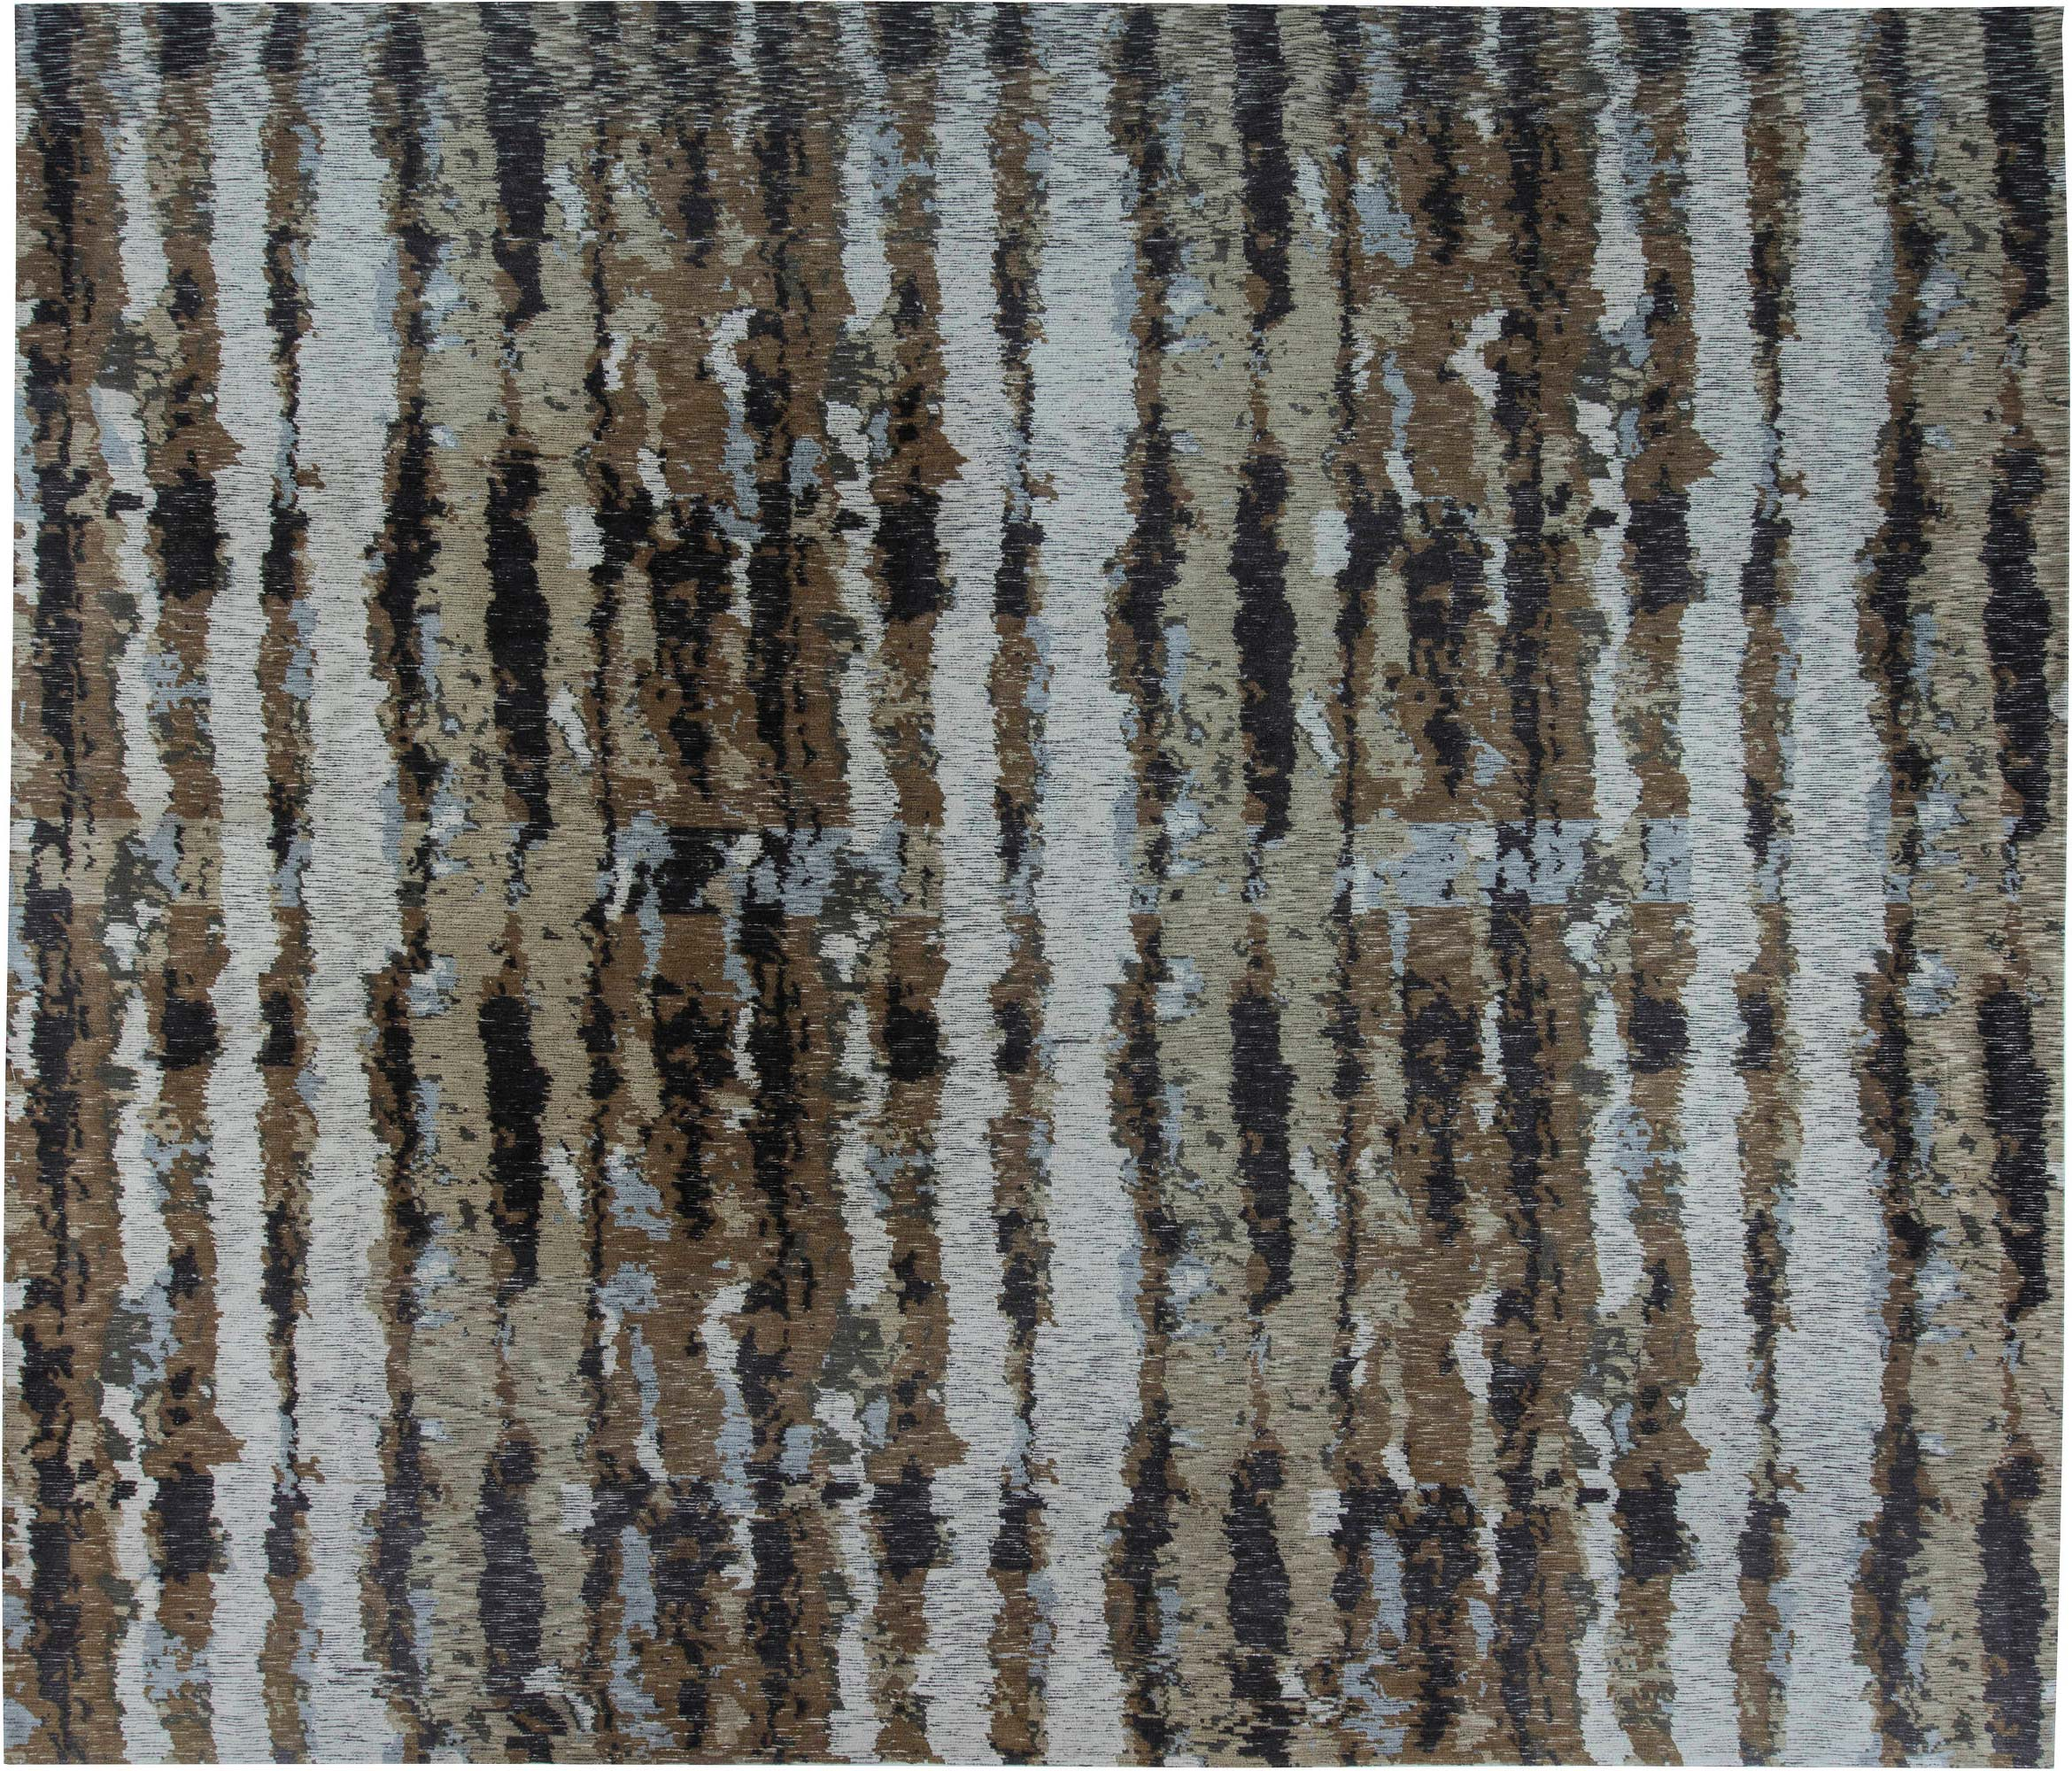 Picture of: Tibetan Warm Brown Sandy Beige Pastel Blue And White Wool Rug N11537 By Dlb